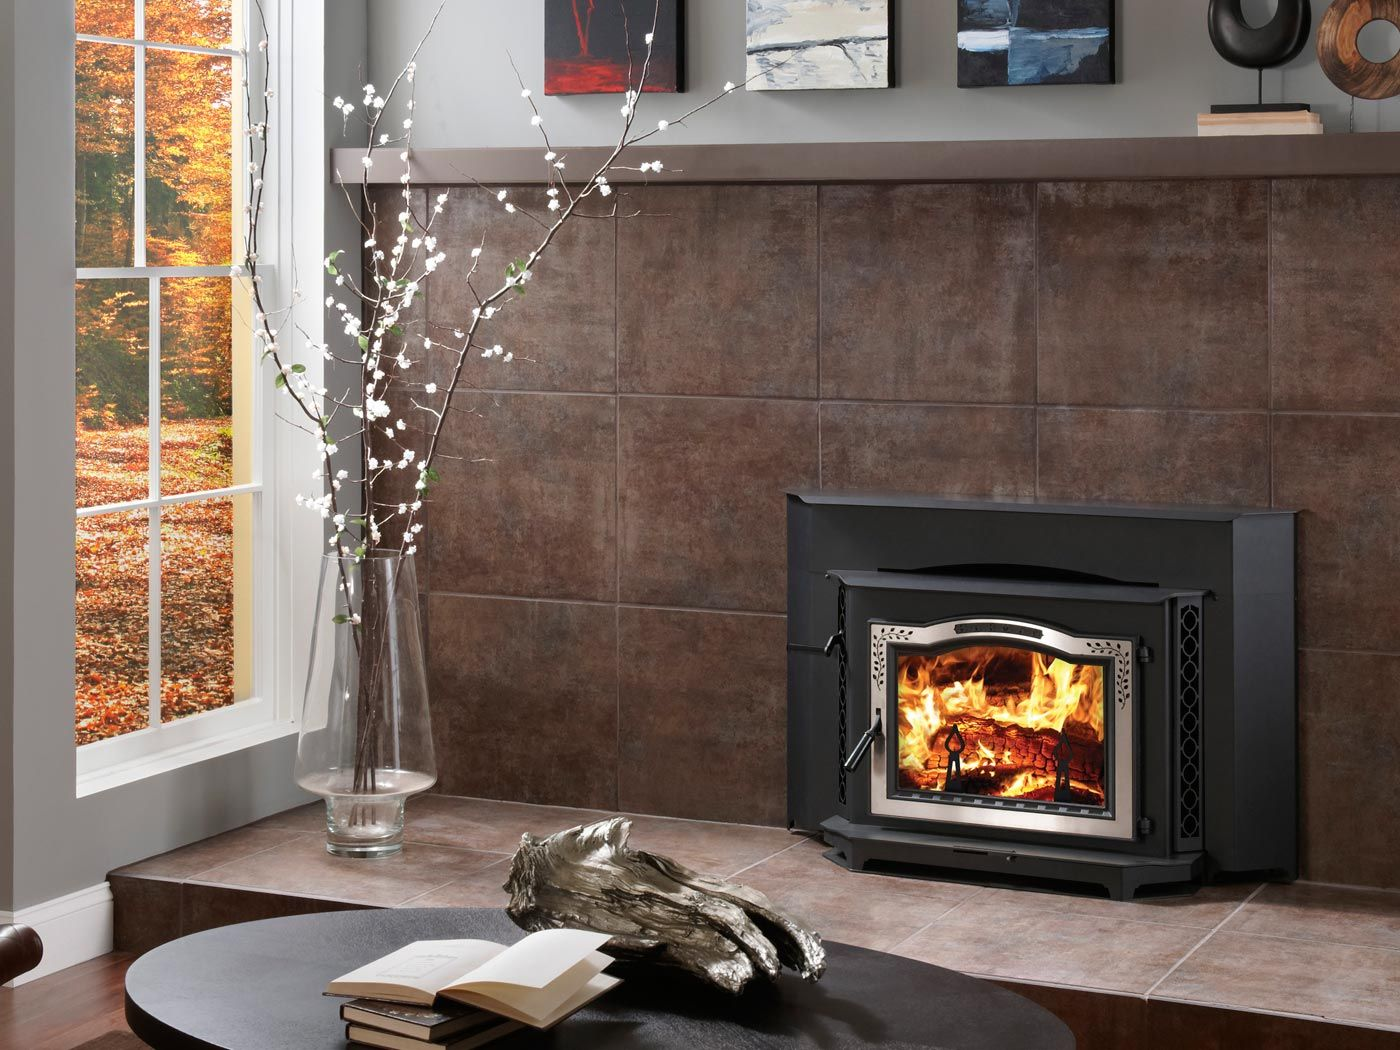 Harman 300i Wood Insert With Images Fireplace Wood Insert Wood Fireplace Inserts